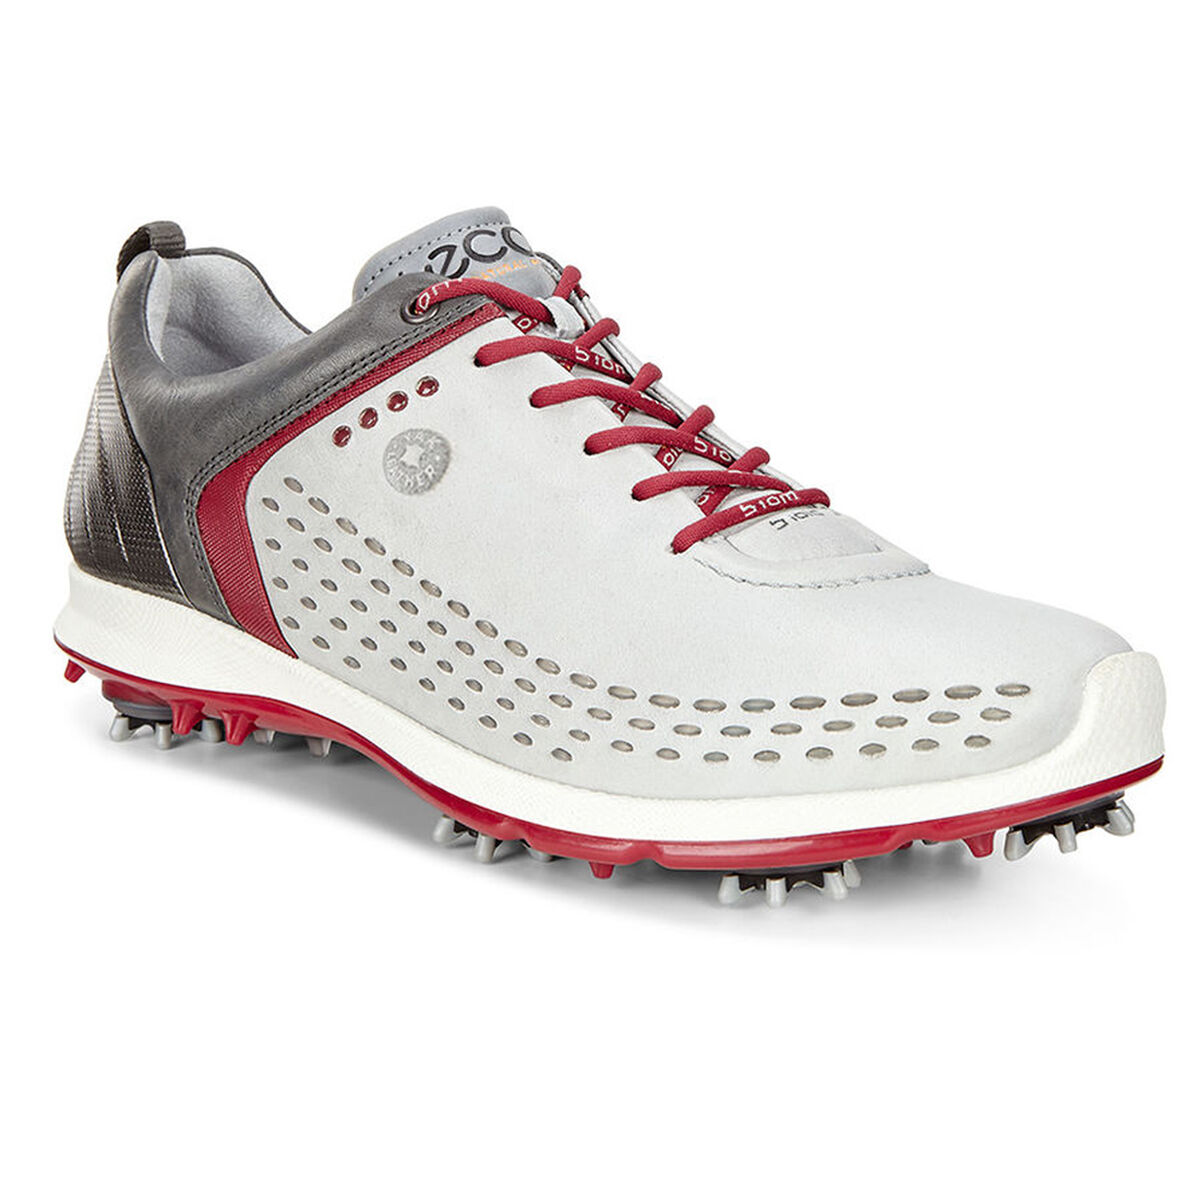 f3145f8e4fba ECCO BIOM G2 Men s Golf Shoe - Grey Red